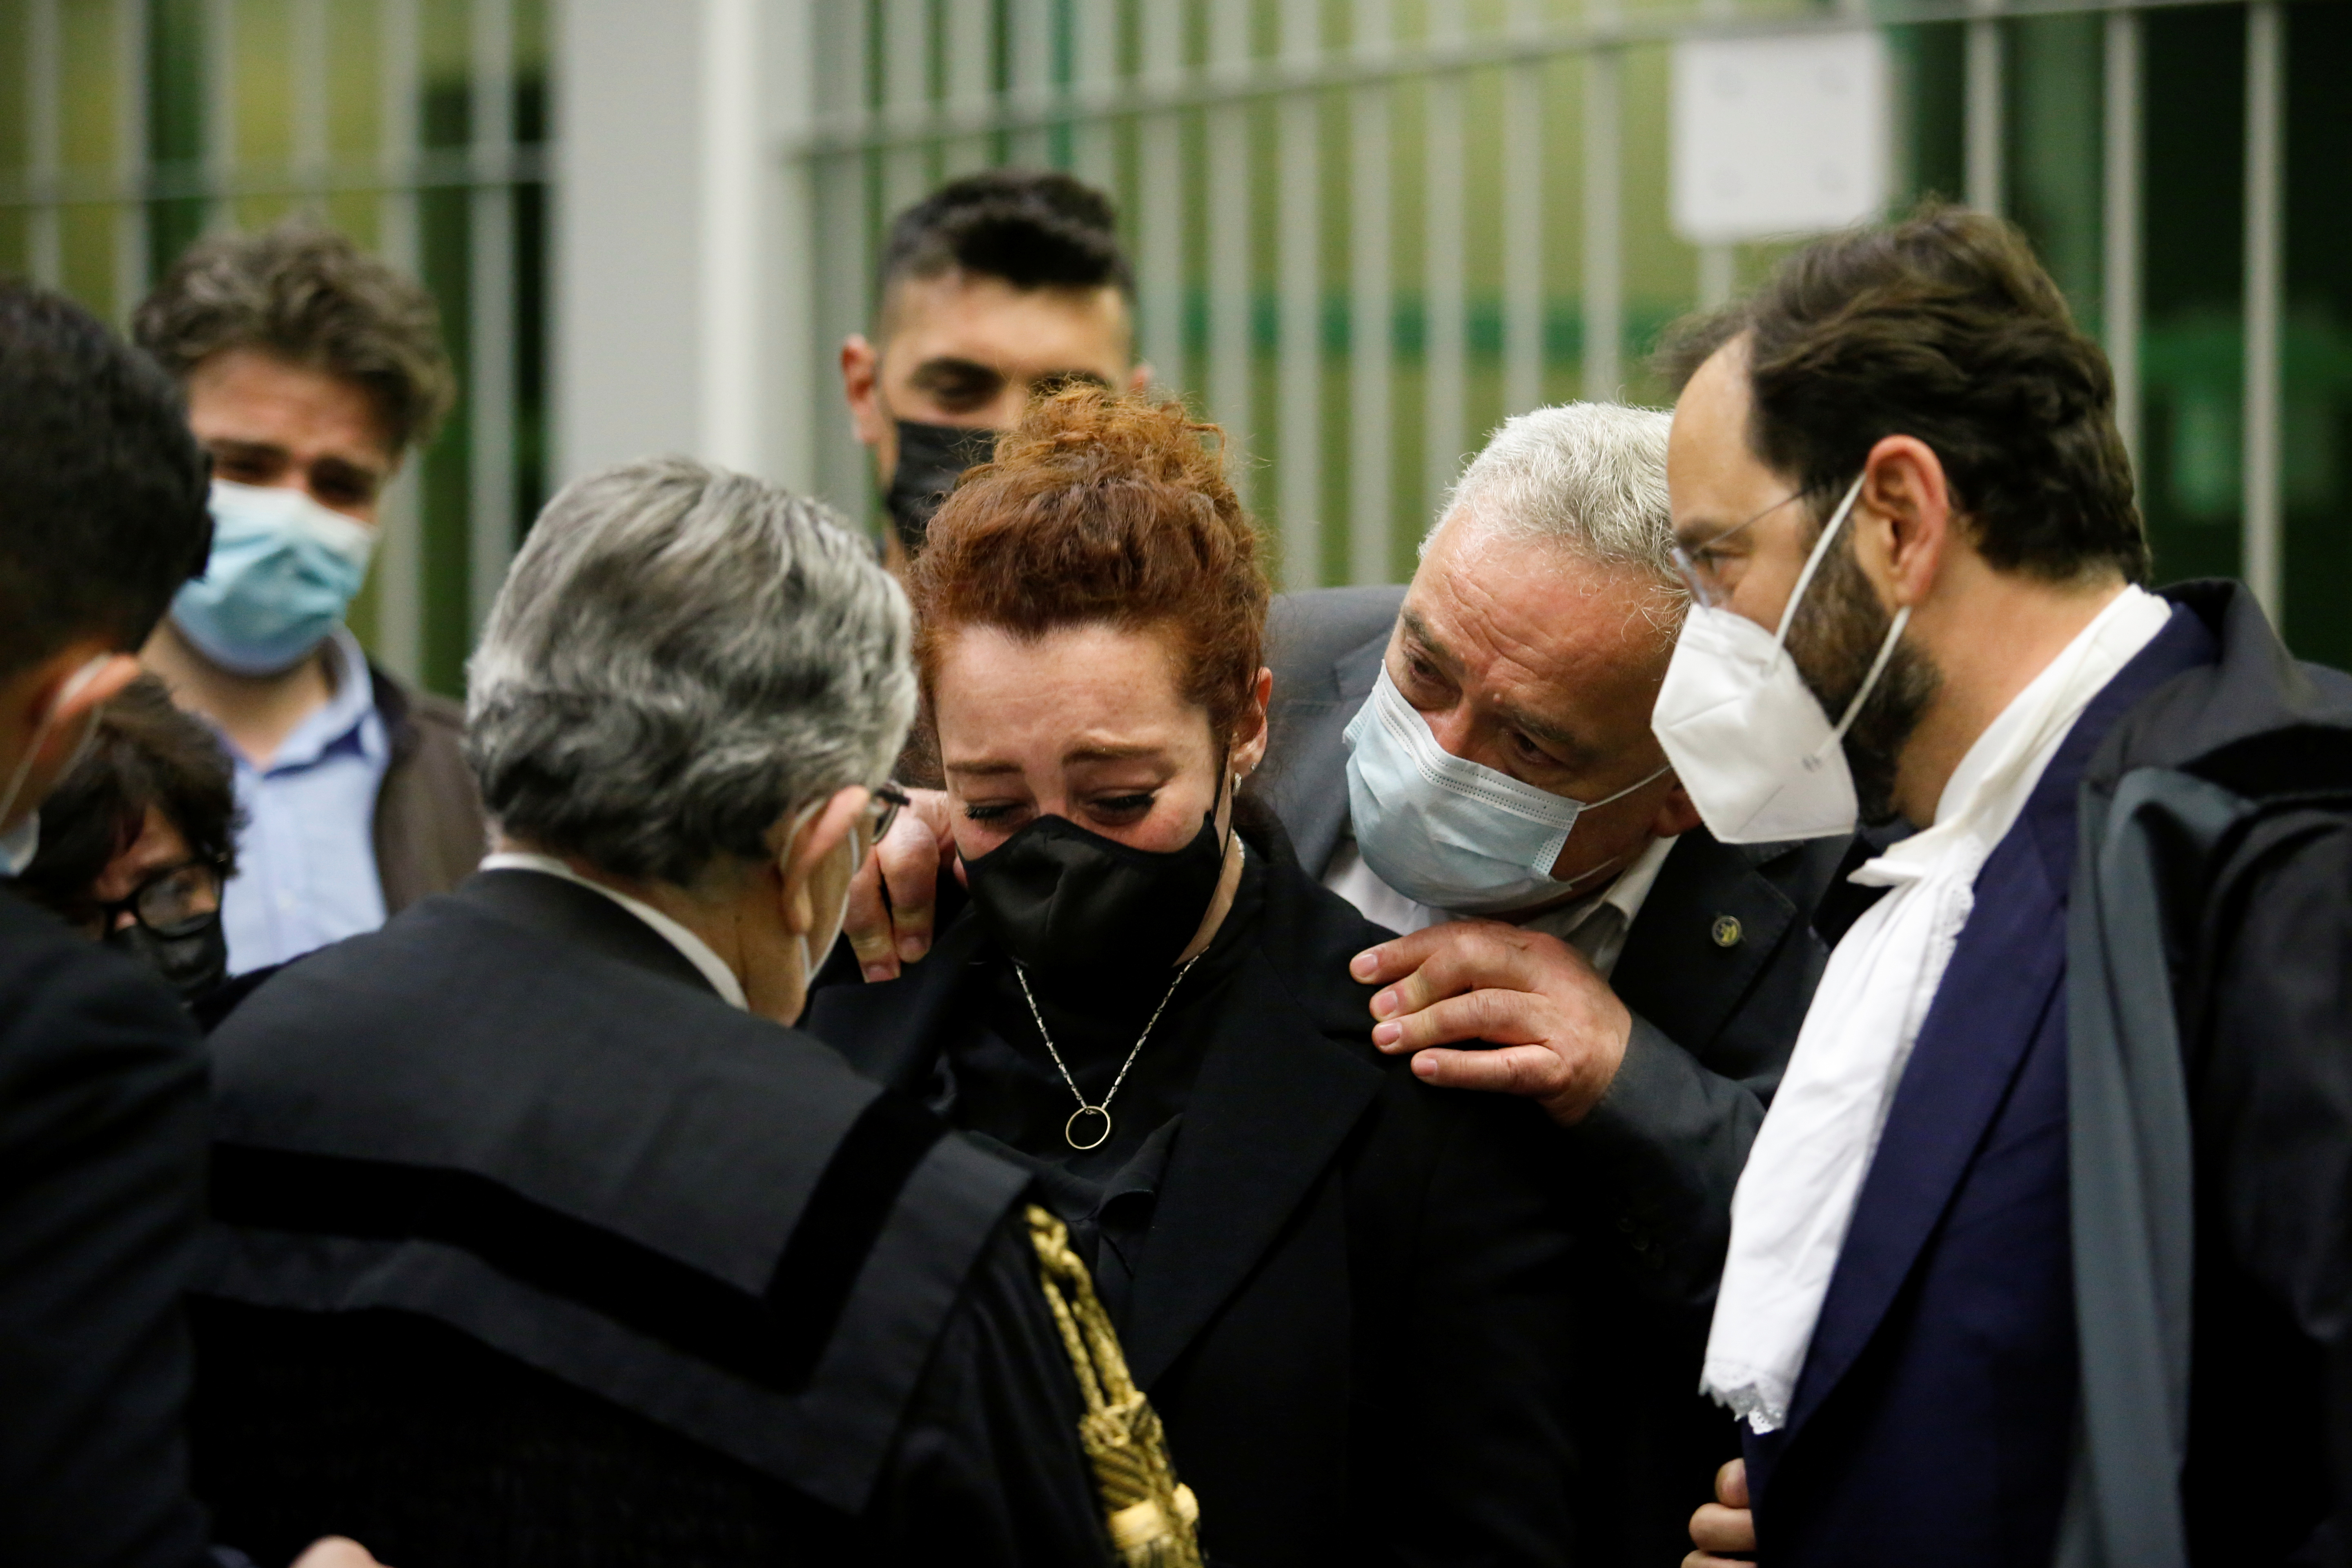 Rosa Maria Esilio, widow of slain Carabinieri military police officer Mario Cerciello Rega, reacts after U.S. citizens Finnegan Lee Elder and Gabriel Christian Natale-Hjorth were found guilty of the murder of her husband, in Rome, Italy, May 5, 2021. REUTERS/Remo Casilli